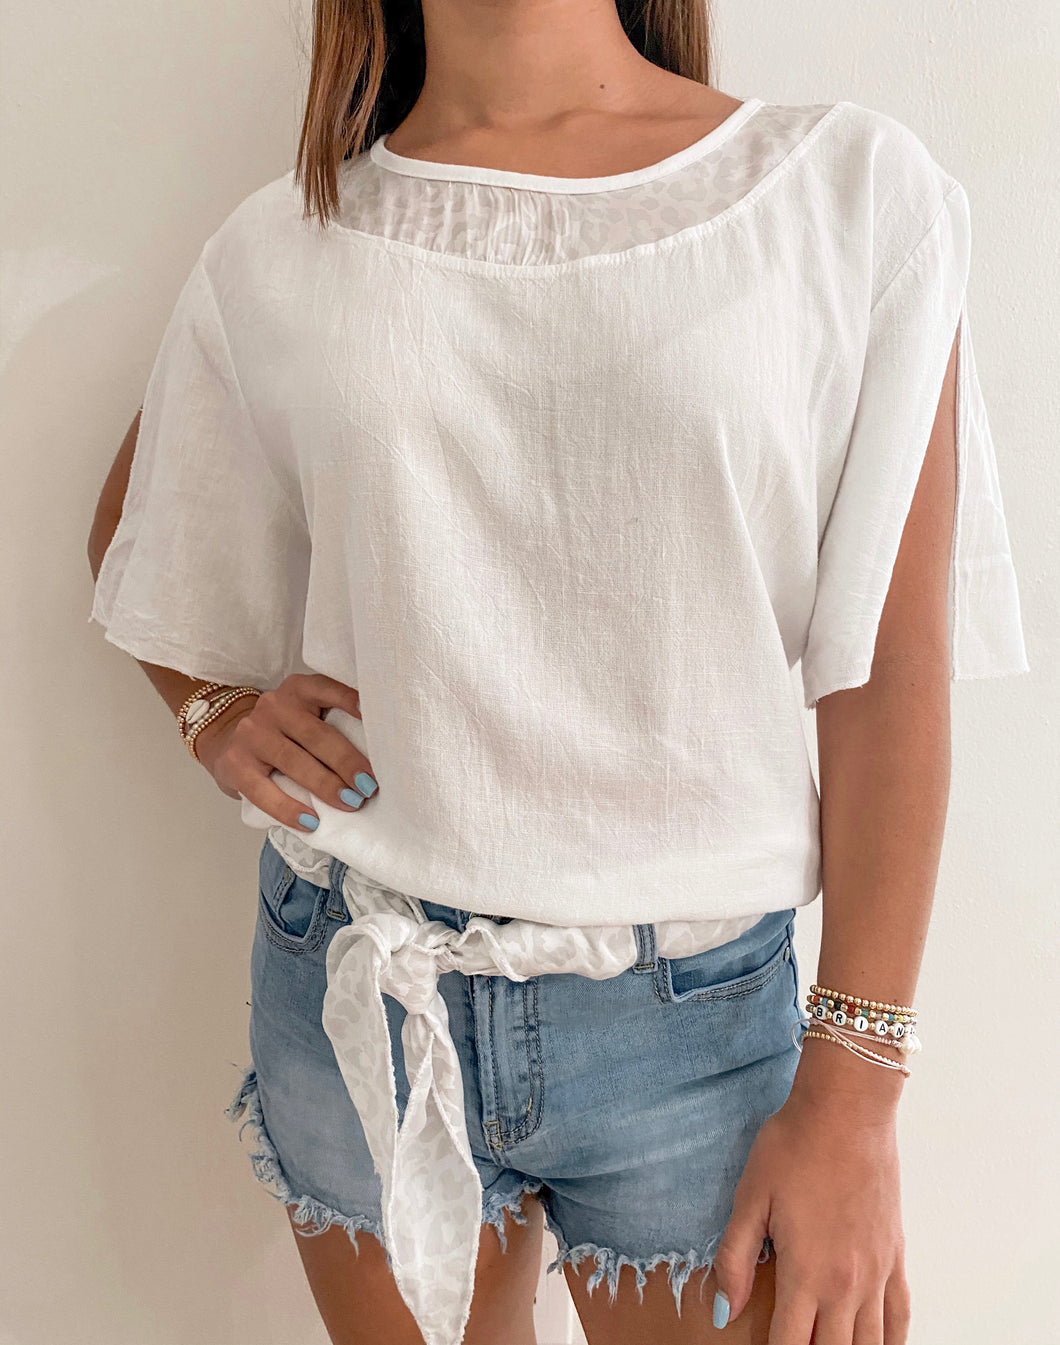 The Rome top - white